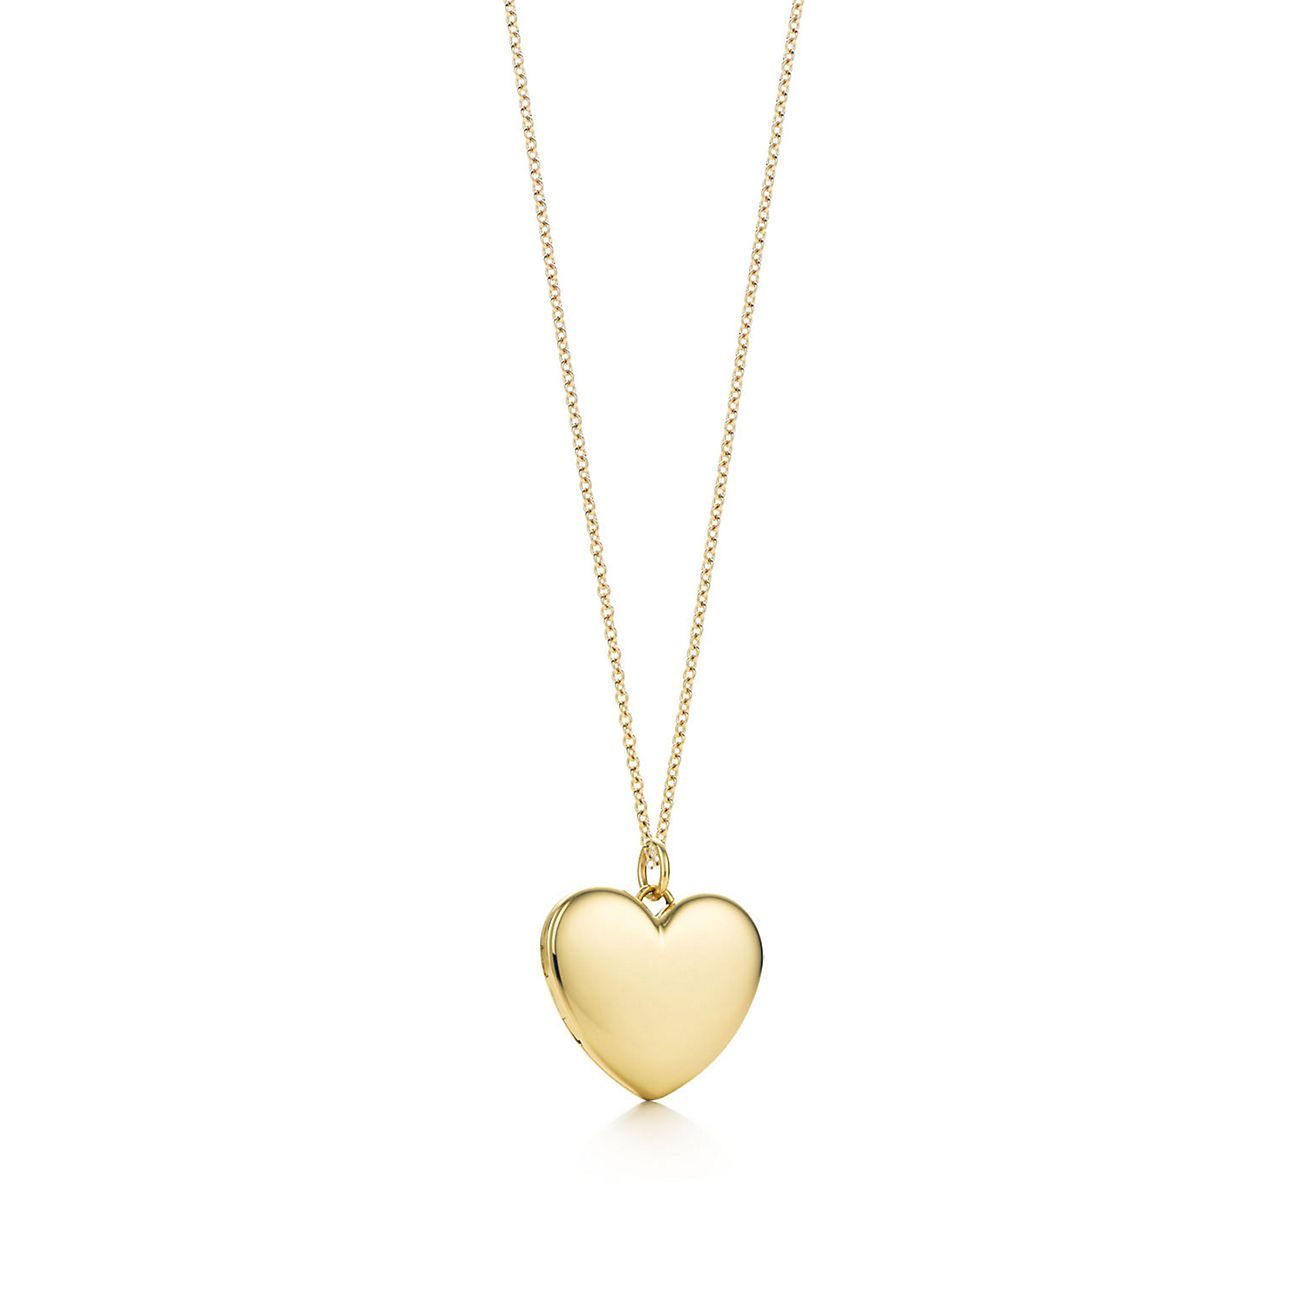 item trendy on yellow accessories in com jewelry aliexpress free gold heart pendant women plated fashion chains necklaces from shipping charm color for